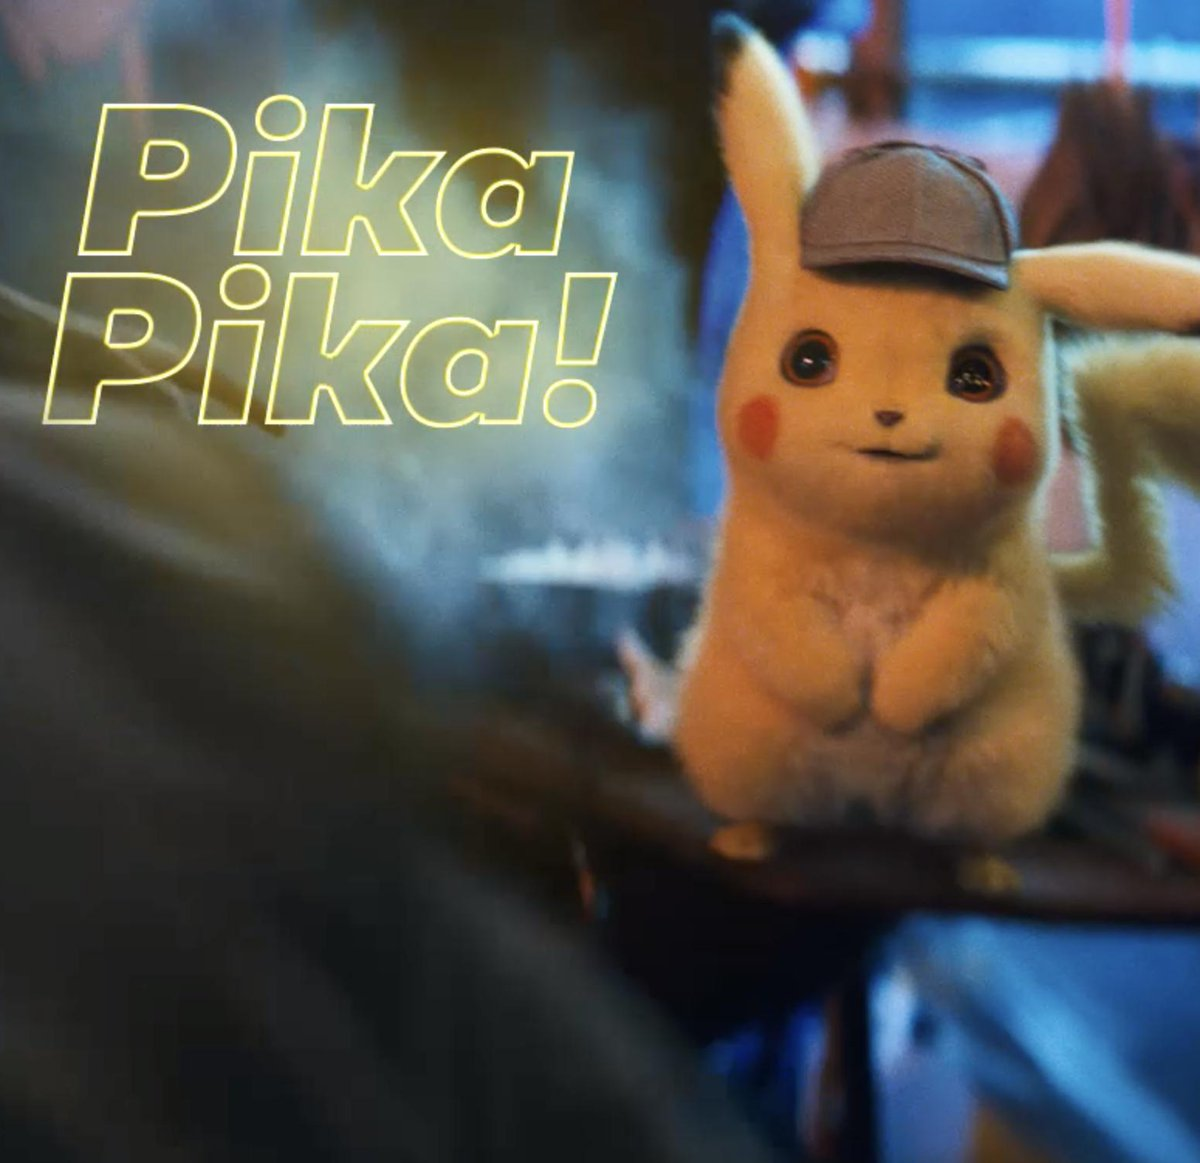 Can you hear him? 💛 Celebrate #PikachuDay and tag your most adorable friend. Pre-order #DetectivePikachu today.